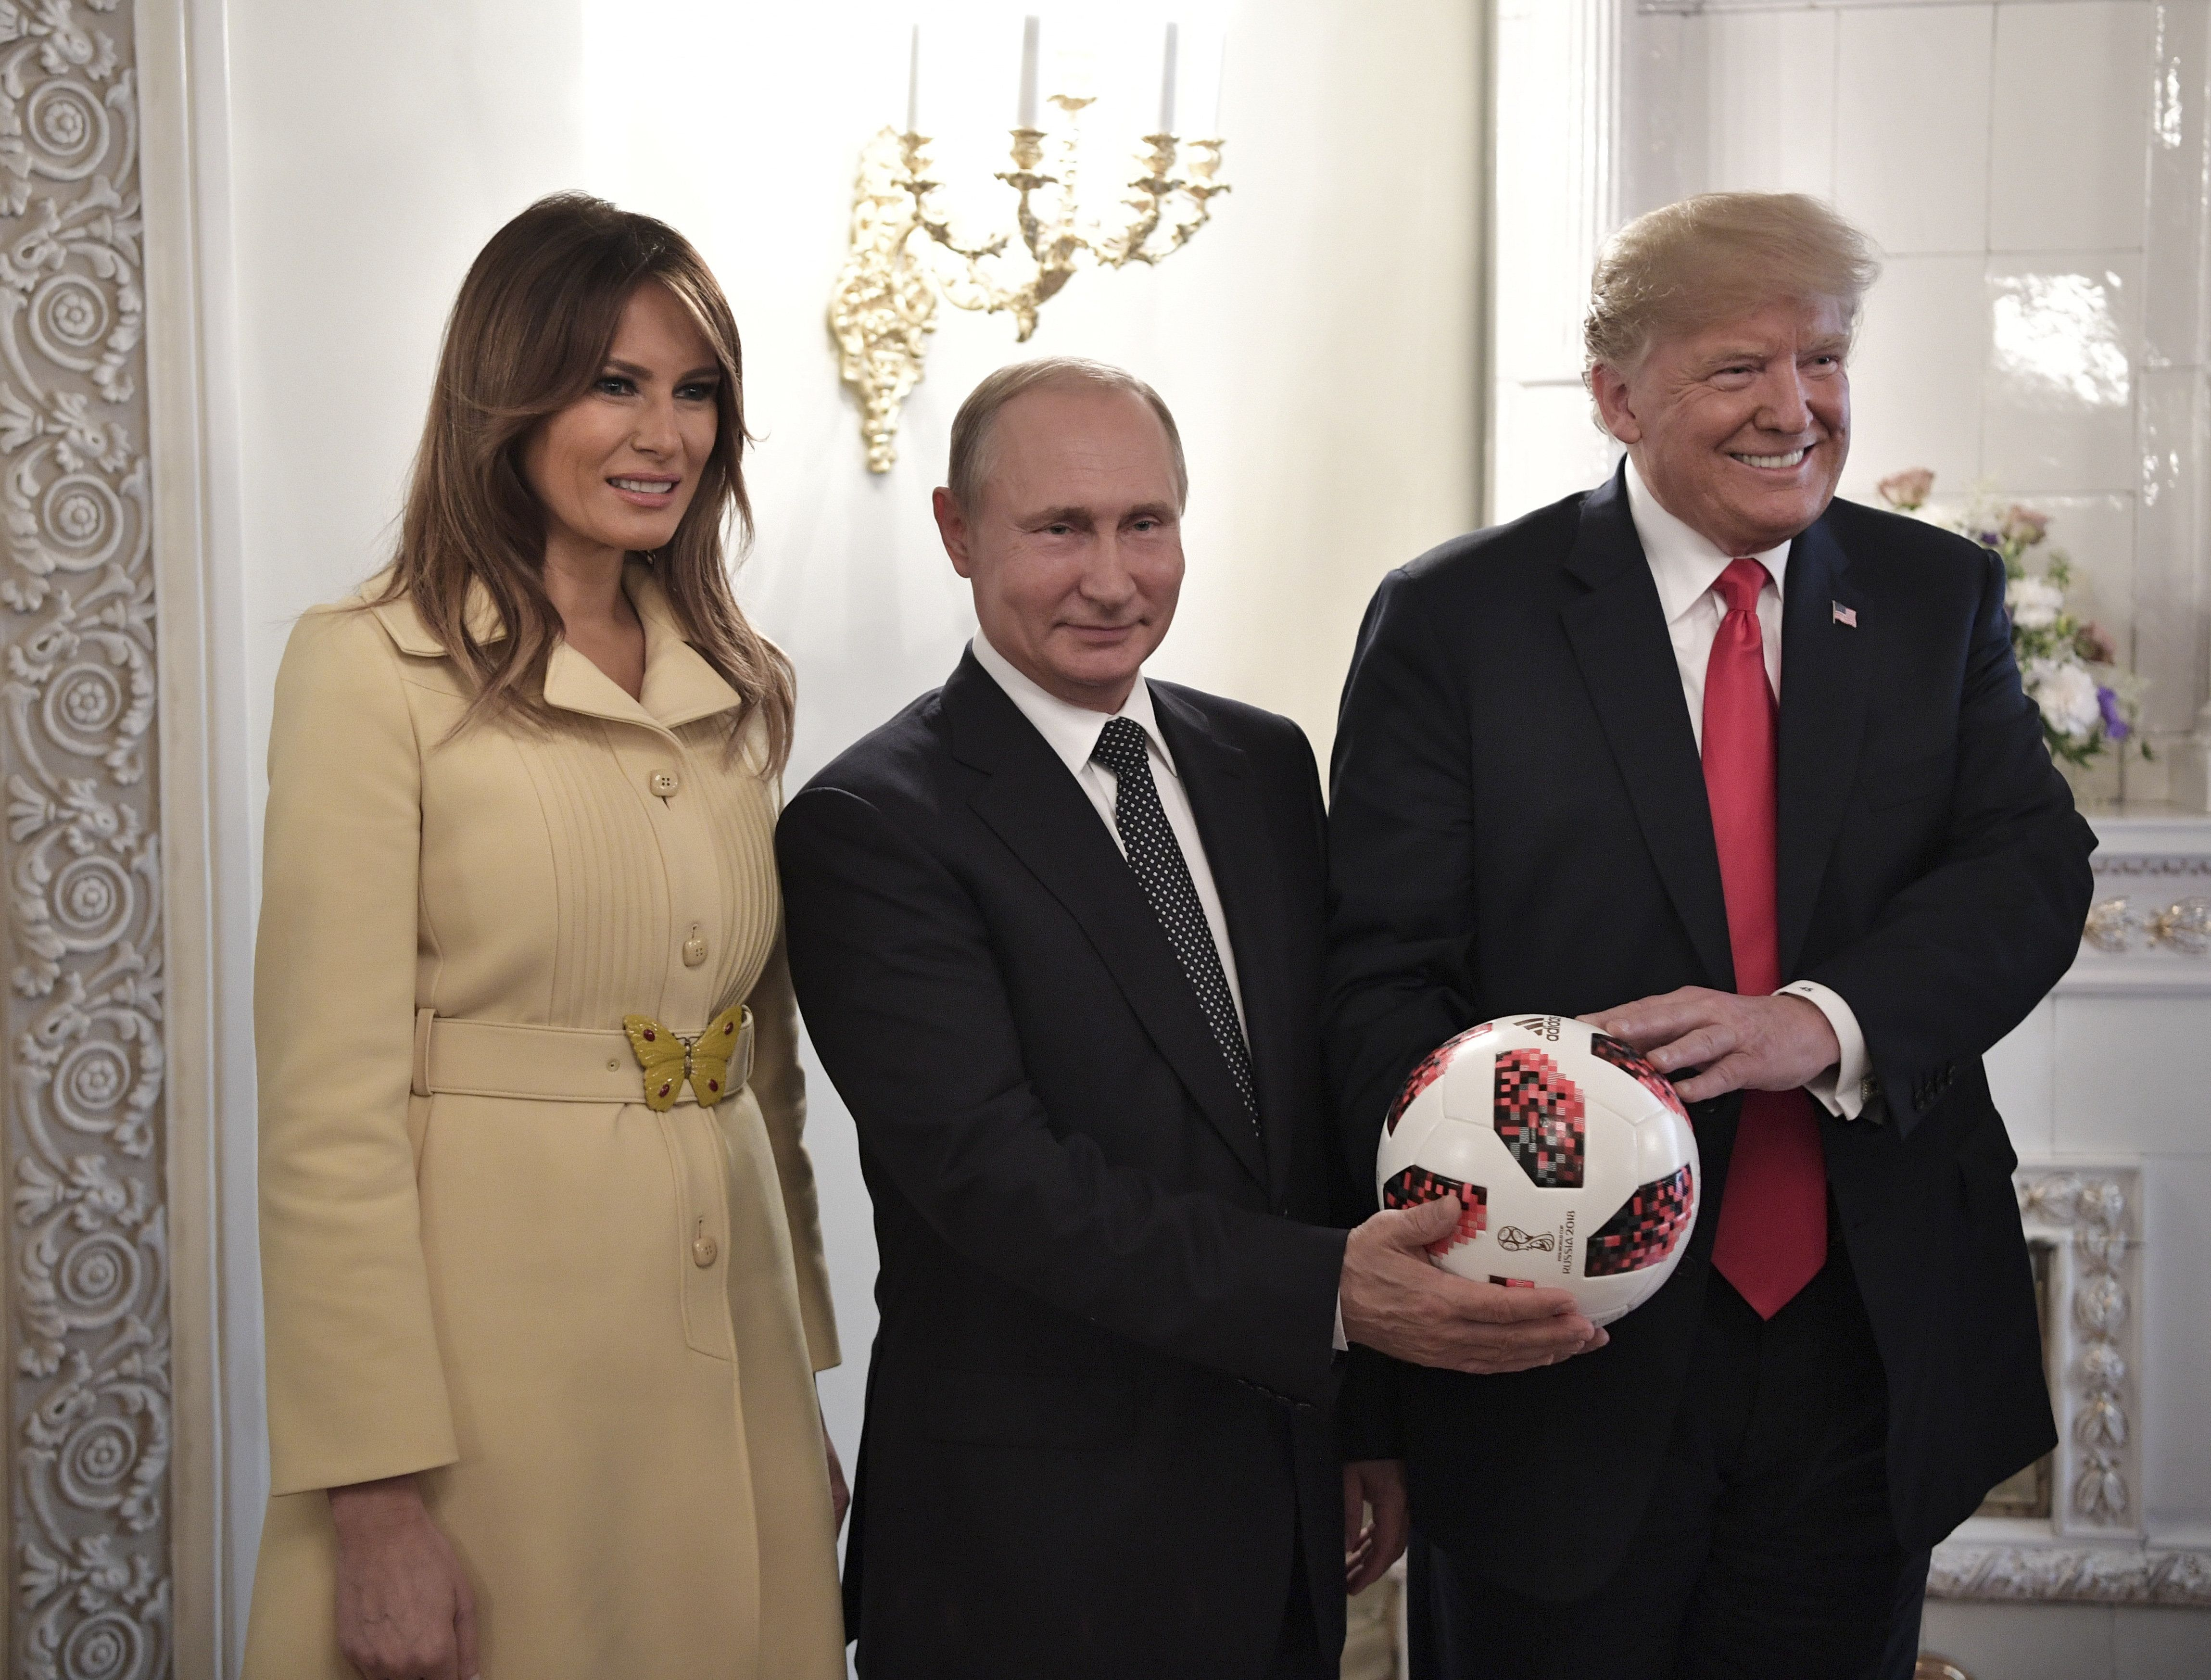 Russia's President Vladimir Putin (C), U.S. President Donald Trump (R) and First lady Melania Trump pose for a picture with a football during a meeting in Helsinki, Finland July 16, 2018. Sputnik/Alexei Nikolsky/Kremlin via REUTERS  ATTENTION EDITORS - THIS IMAGE WAS PROVIDED BY A THIRD PARTY.